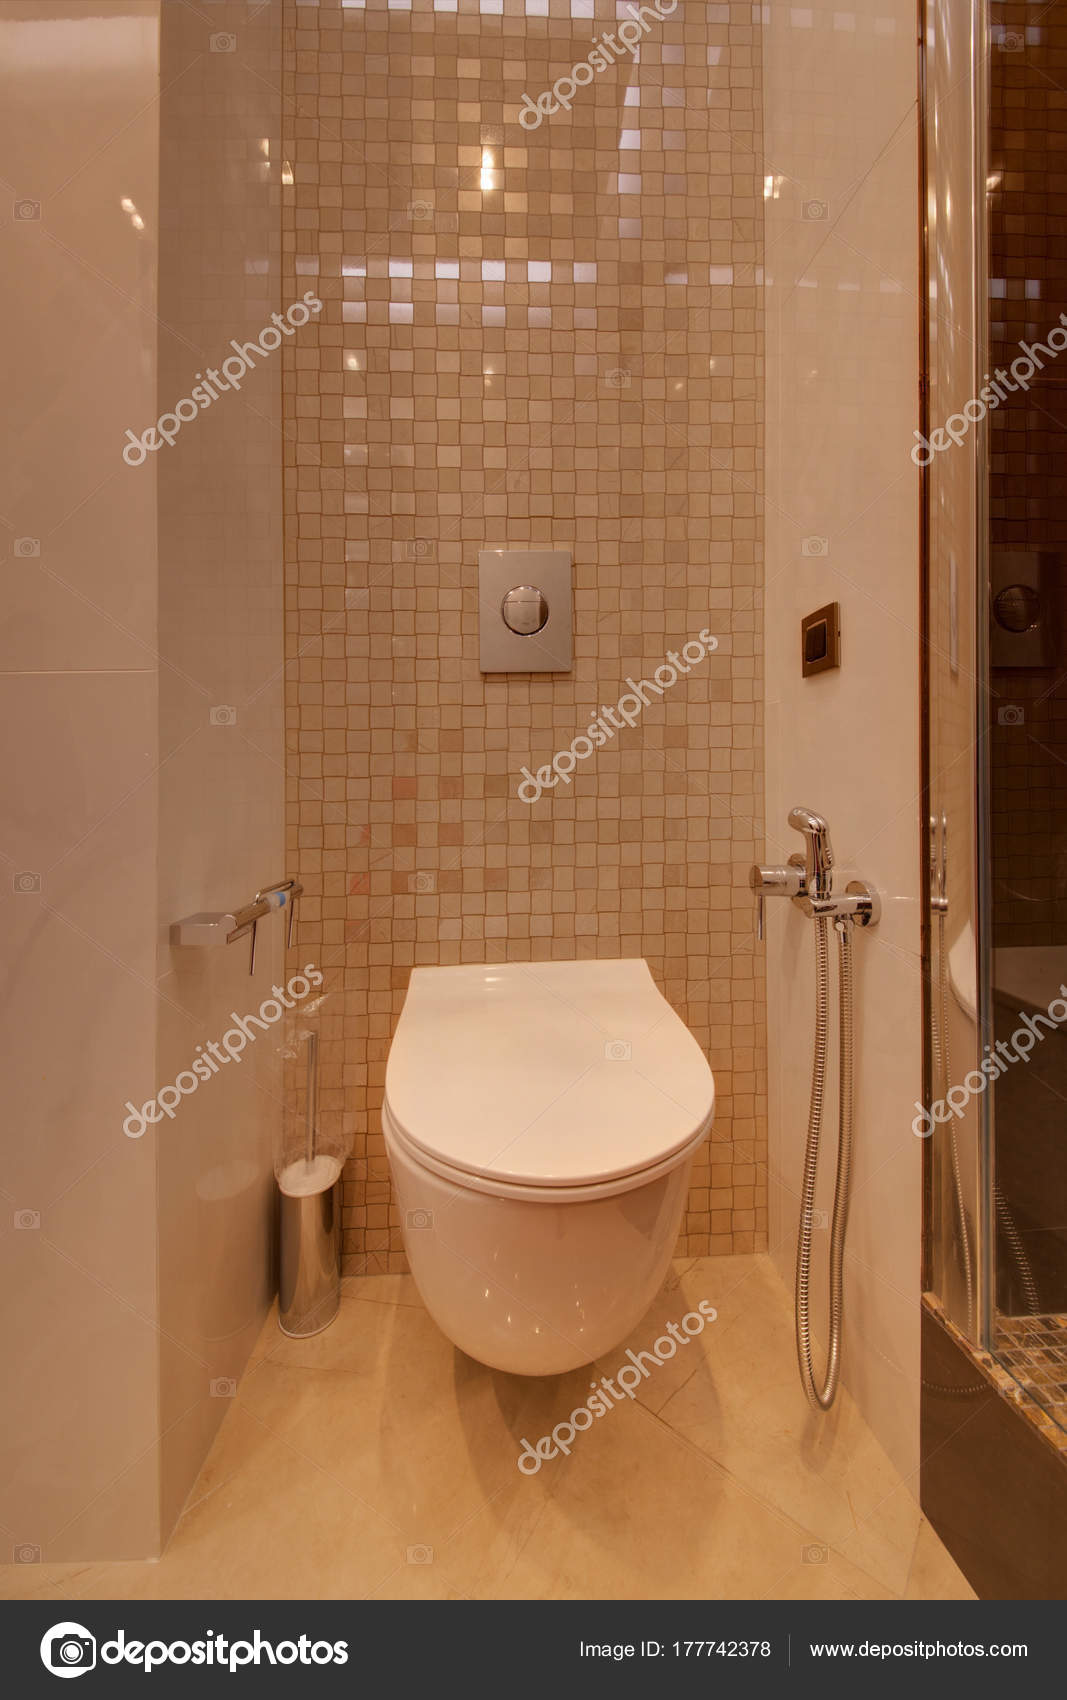 Hygienic shower in the toilet. Installation of hygienic shower in the toilet: instructions 56